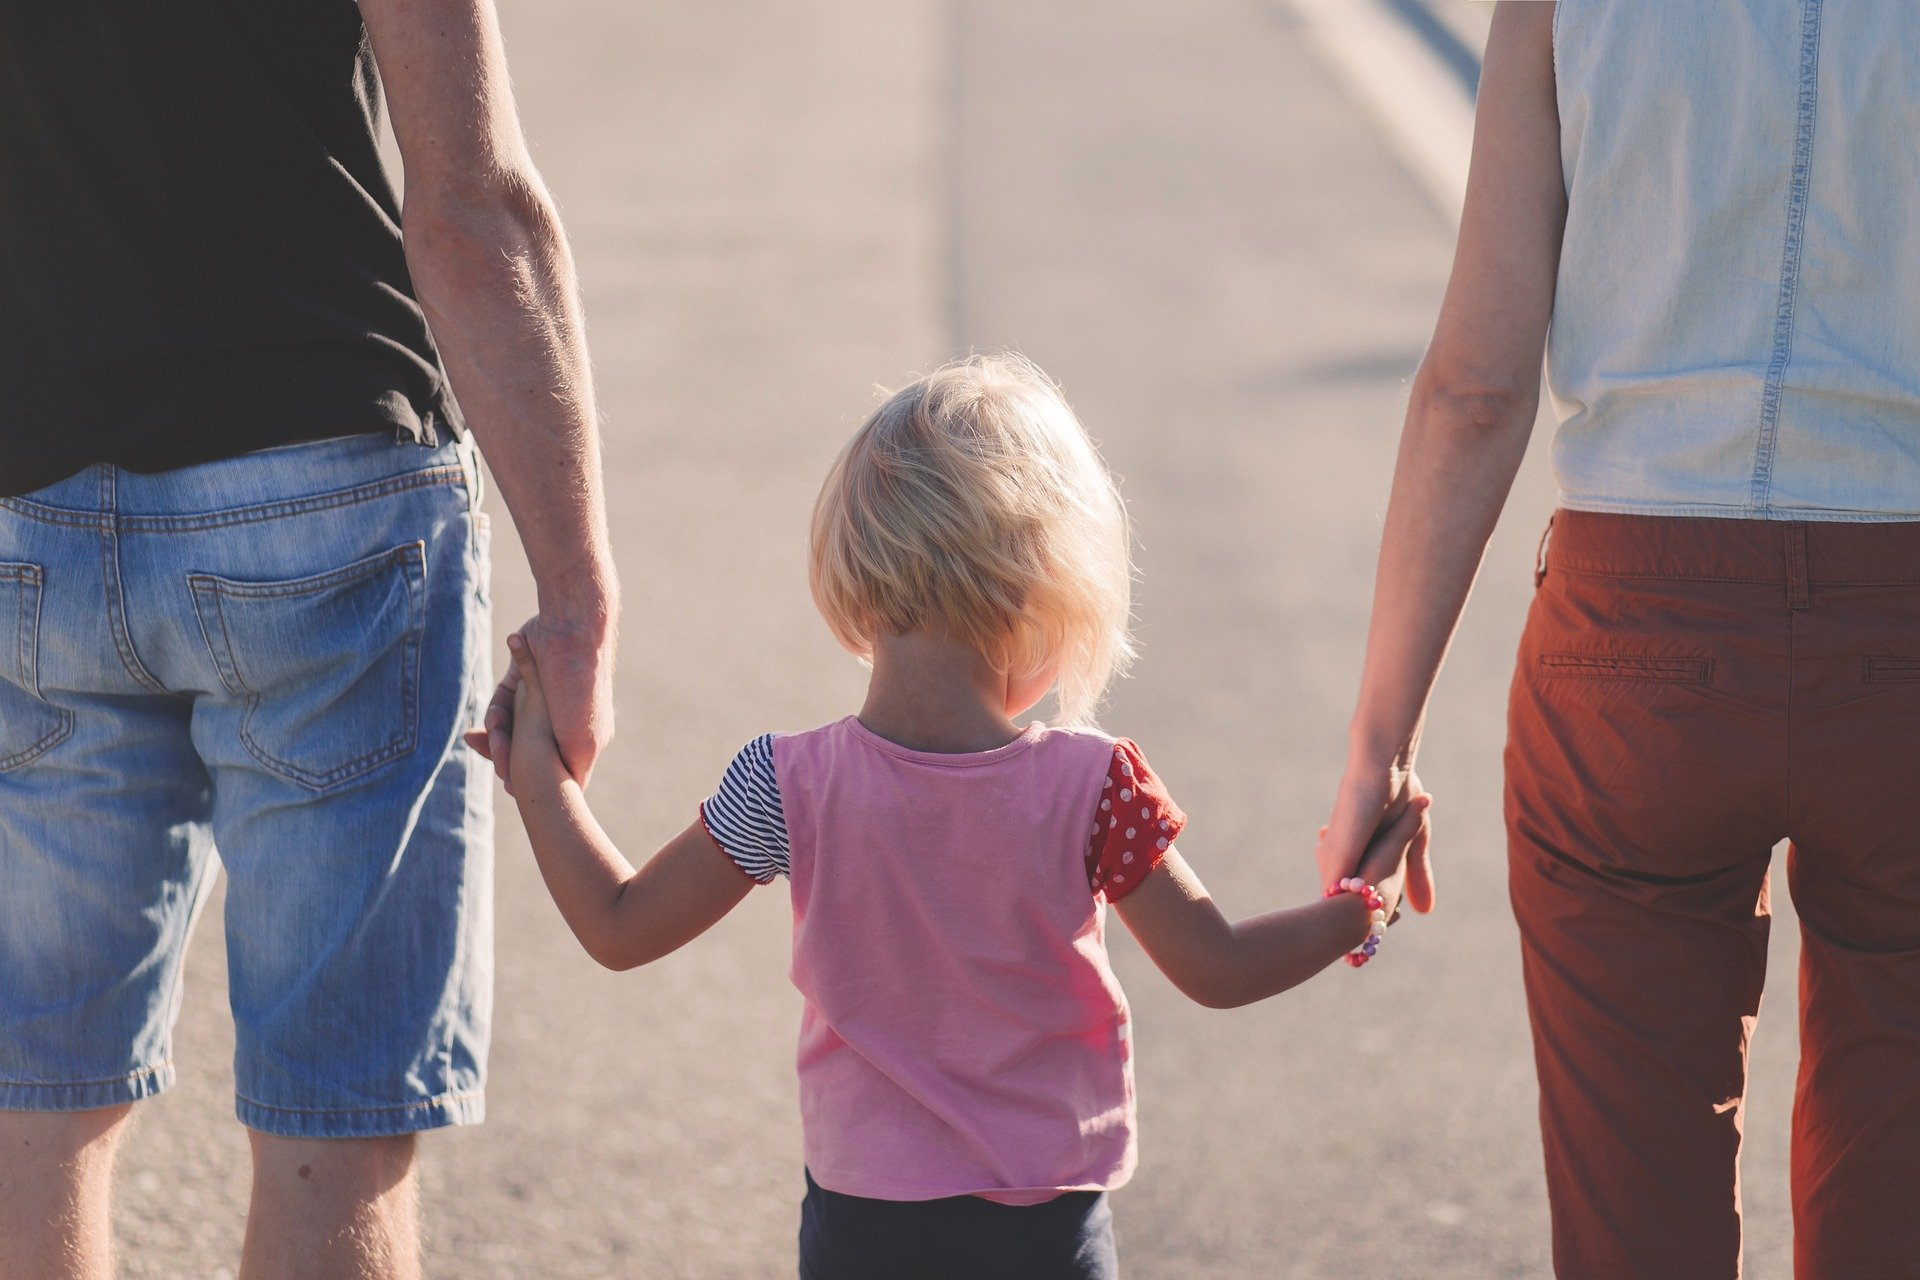 Co-Parenting During the Coronavirus - Collaborative Practice San Diego - co-parenting, divorce, collaborative divorce, coronavirus - Image by Pexels from Pixabay